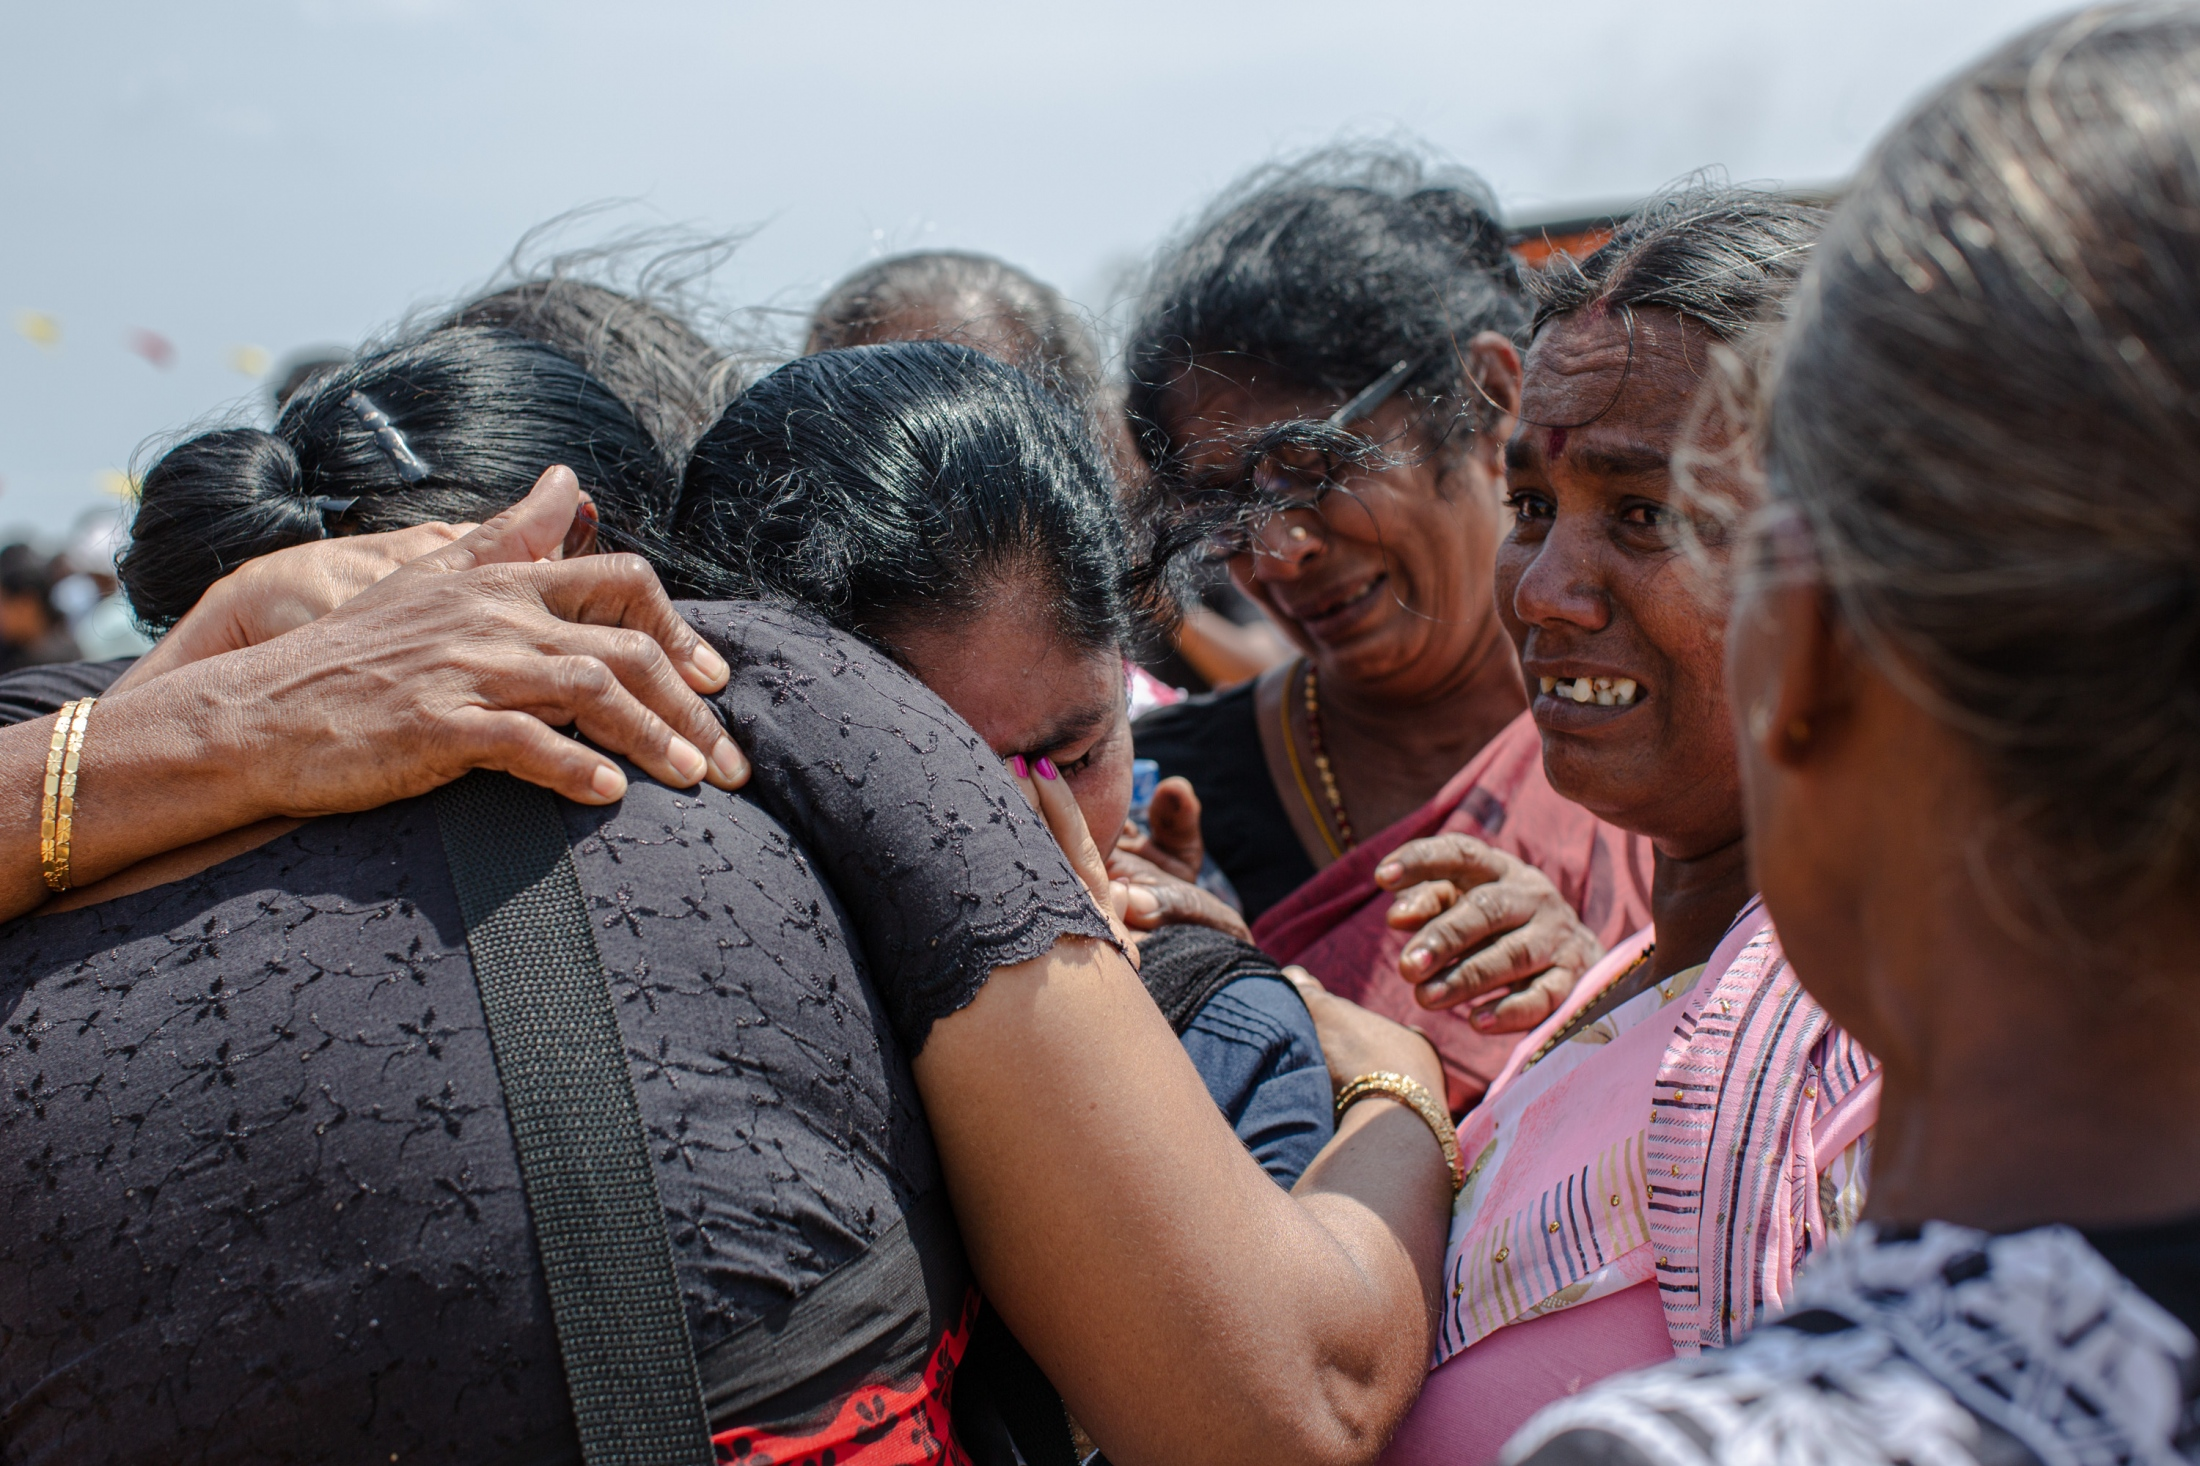 18 May 2019 marked ten years since the end of the Sri Lankan Civil War. Mullivaikkal Remembrance Day takes place in the fields where tens of thousands of Tamils were killed by the army in the final month of the 30-year civil war.